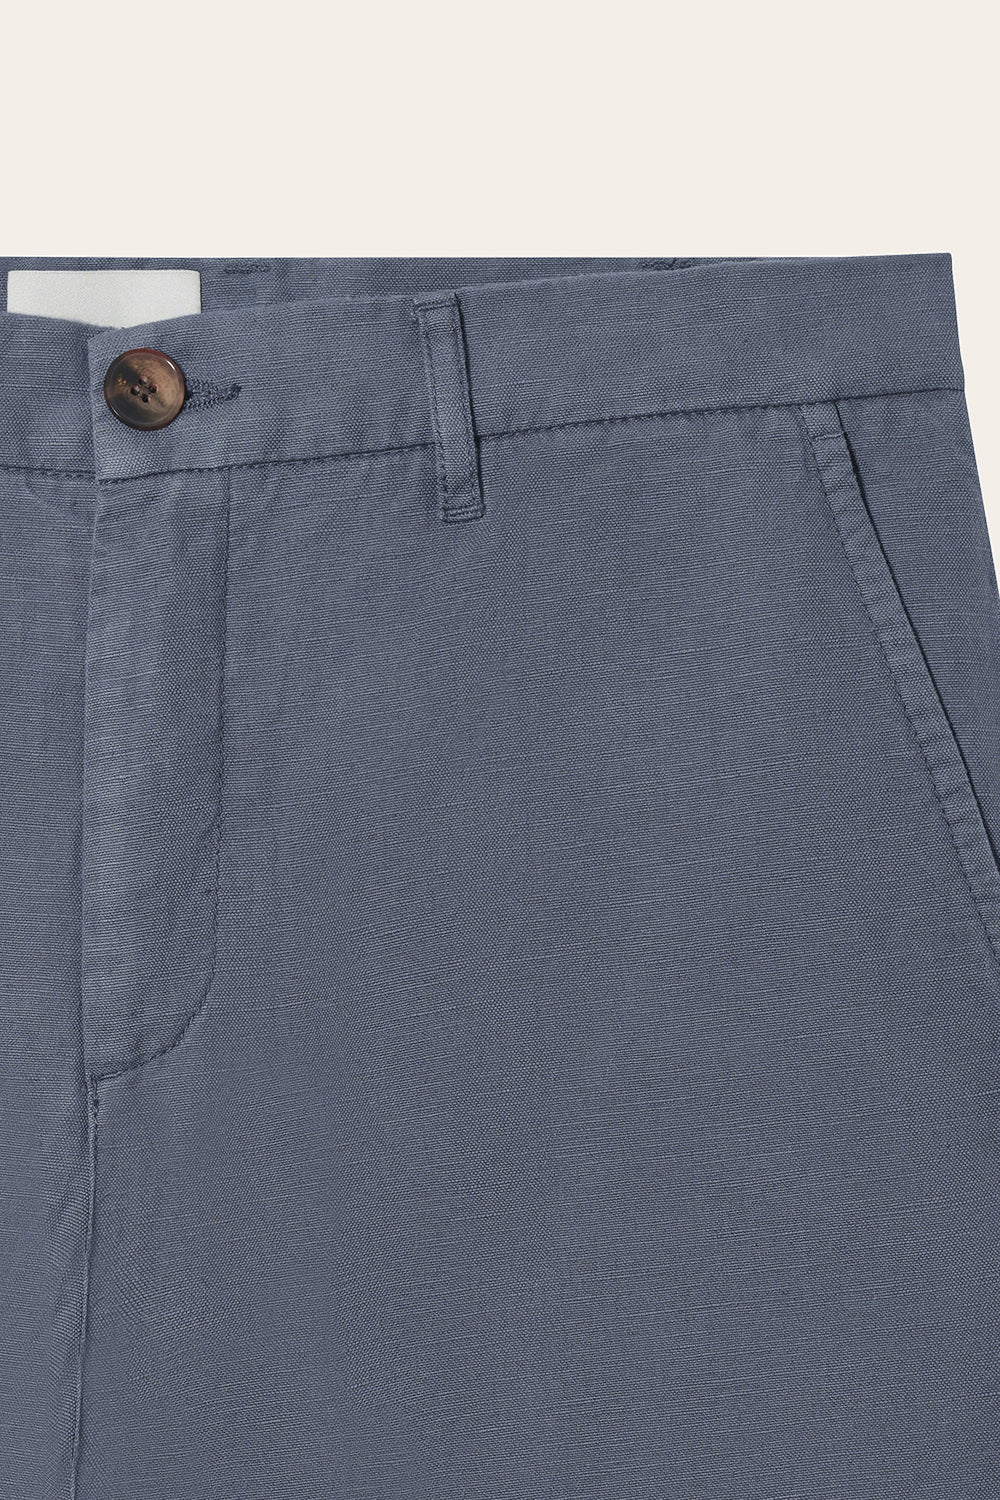 Vacoa Shorts - Bleugris